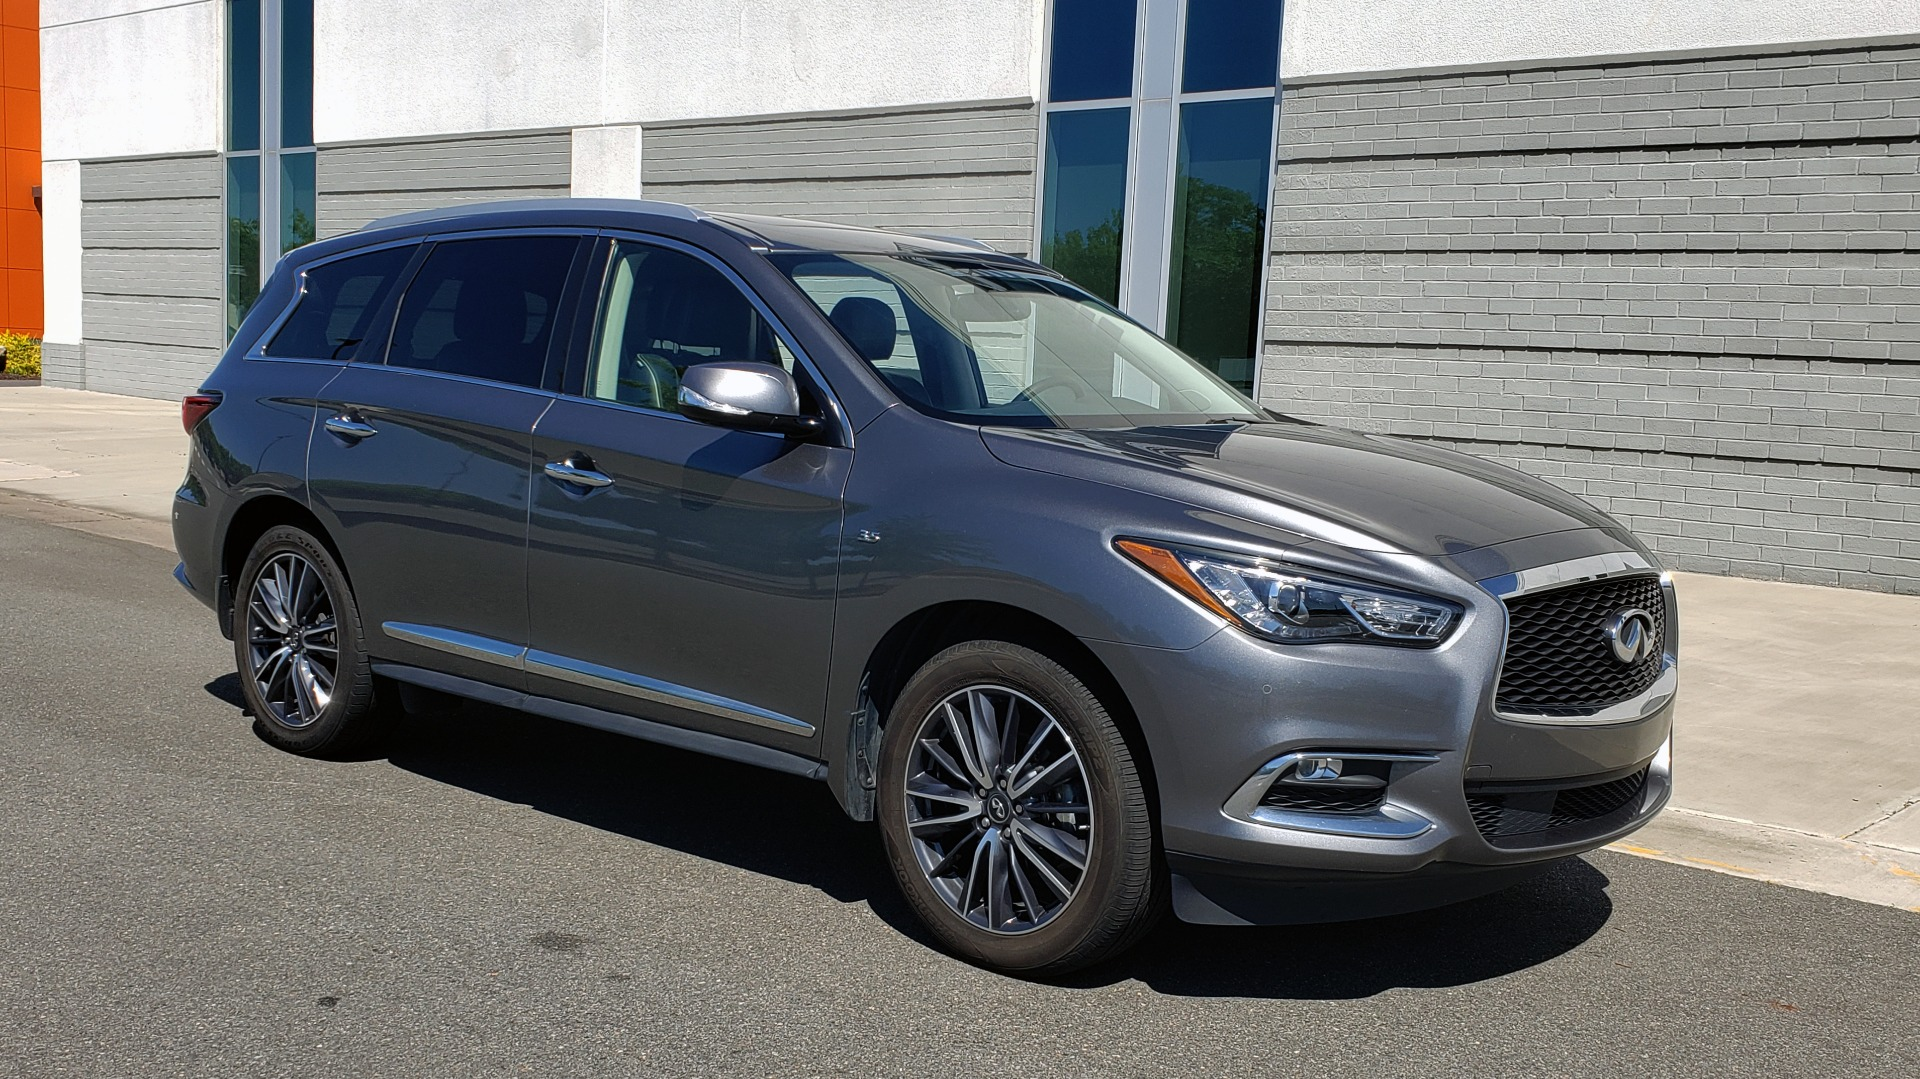 Used 2018 INFINITI QX60 3.5L V6 / FWD / CVT TRANS / NAV / SUNROOF / 3-ROWS / REARVIEW for sale $31,999 at Formula Imports in Charlotte NC 28227 7